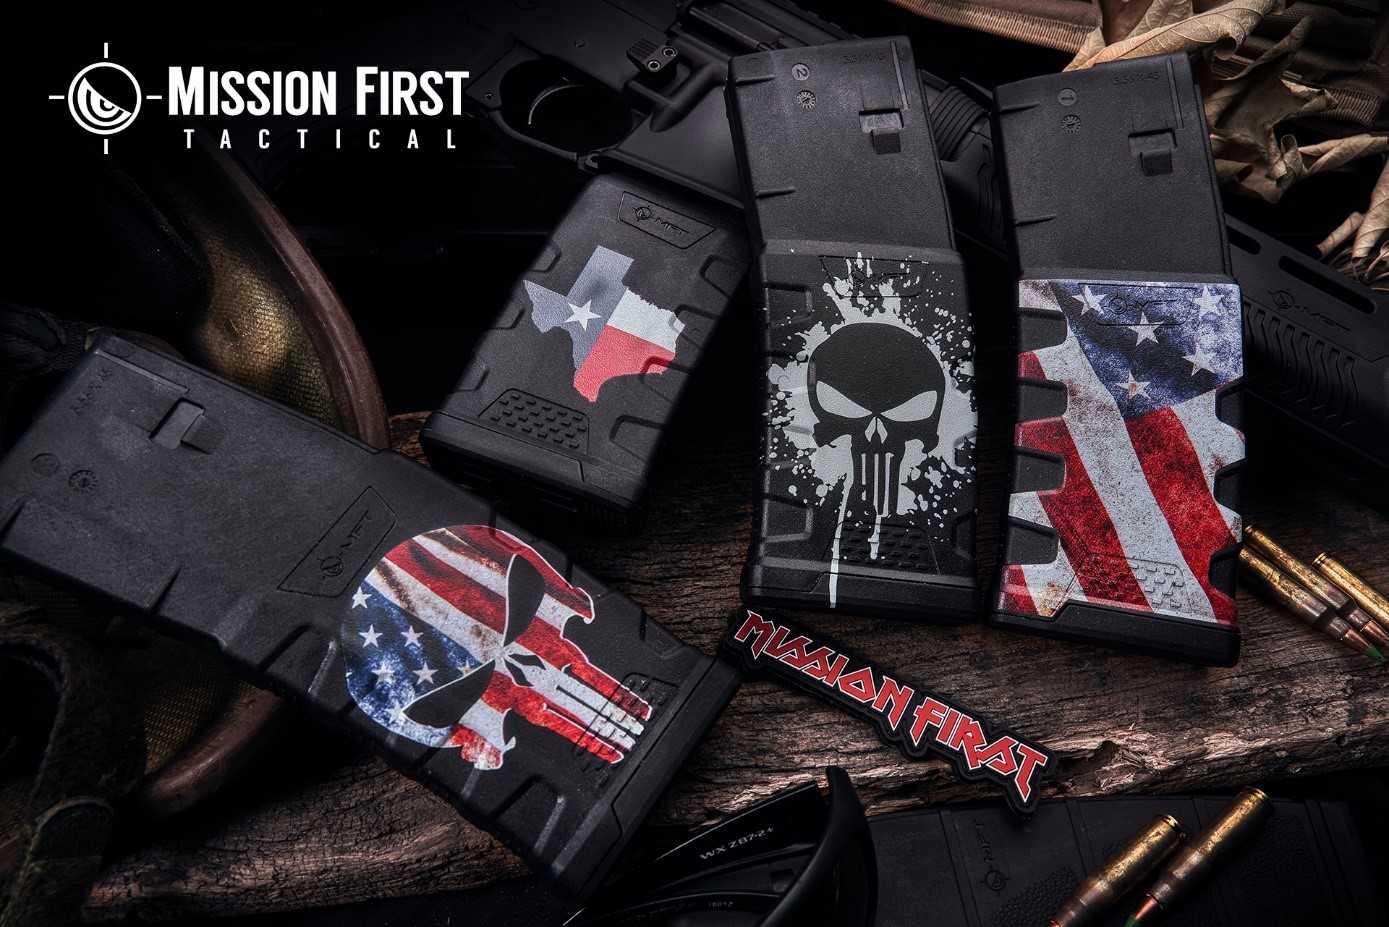 Mission First Tactical (MFT) Introduces New Decorated Extreme Duty 5.56 Polymer Mag